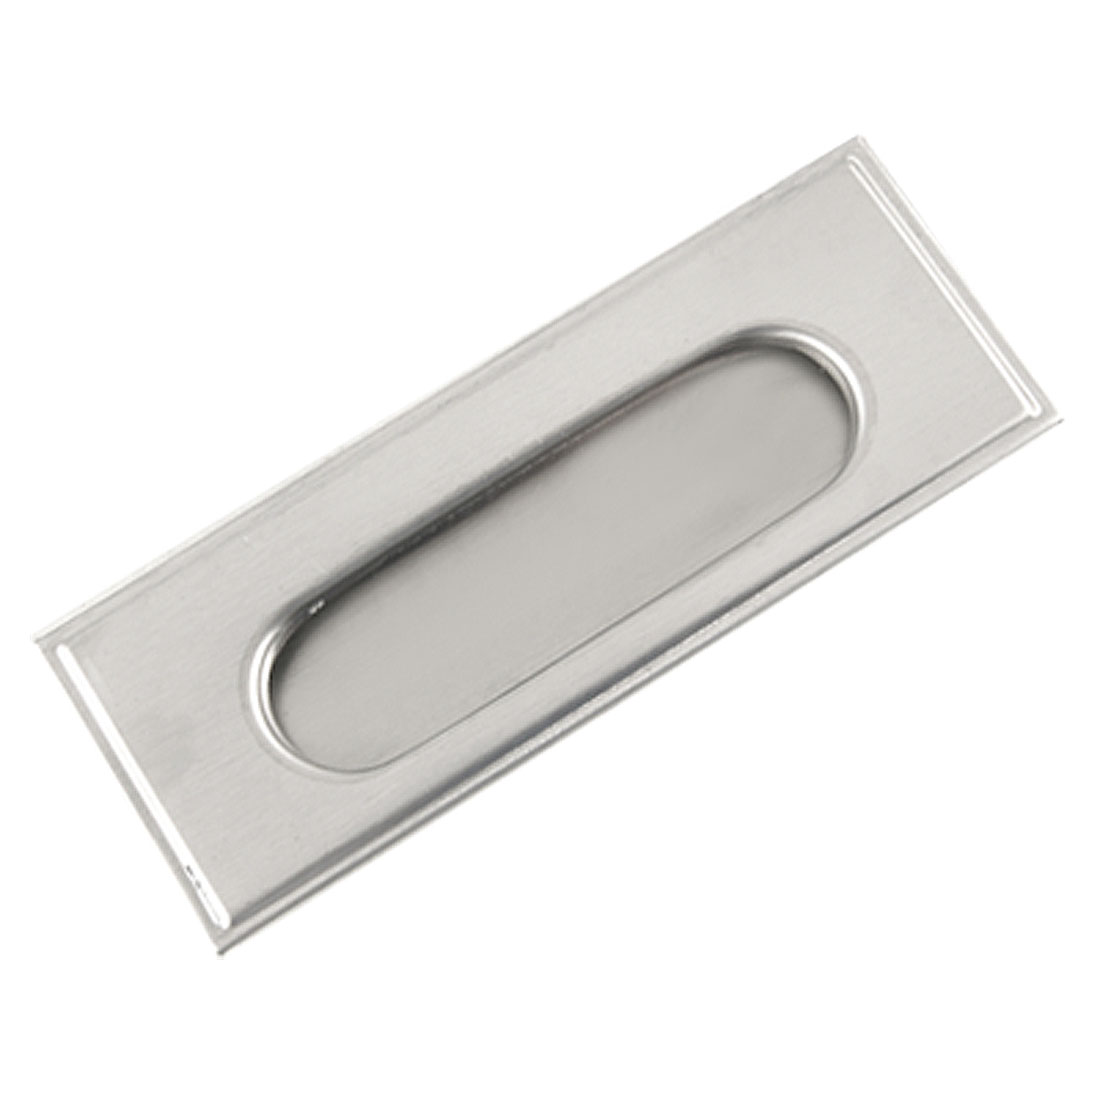 Sliding Door Cabinet Drawer Stainless Steel Recessed Flush Pull 108mm x 4mm